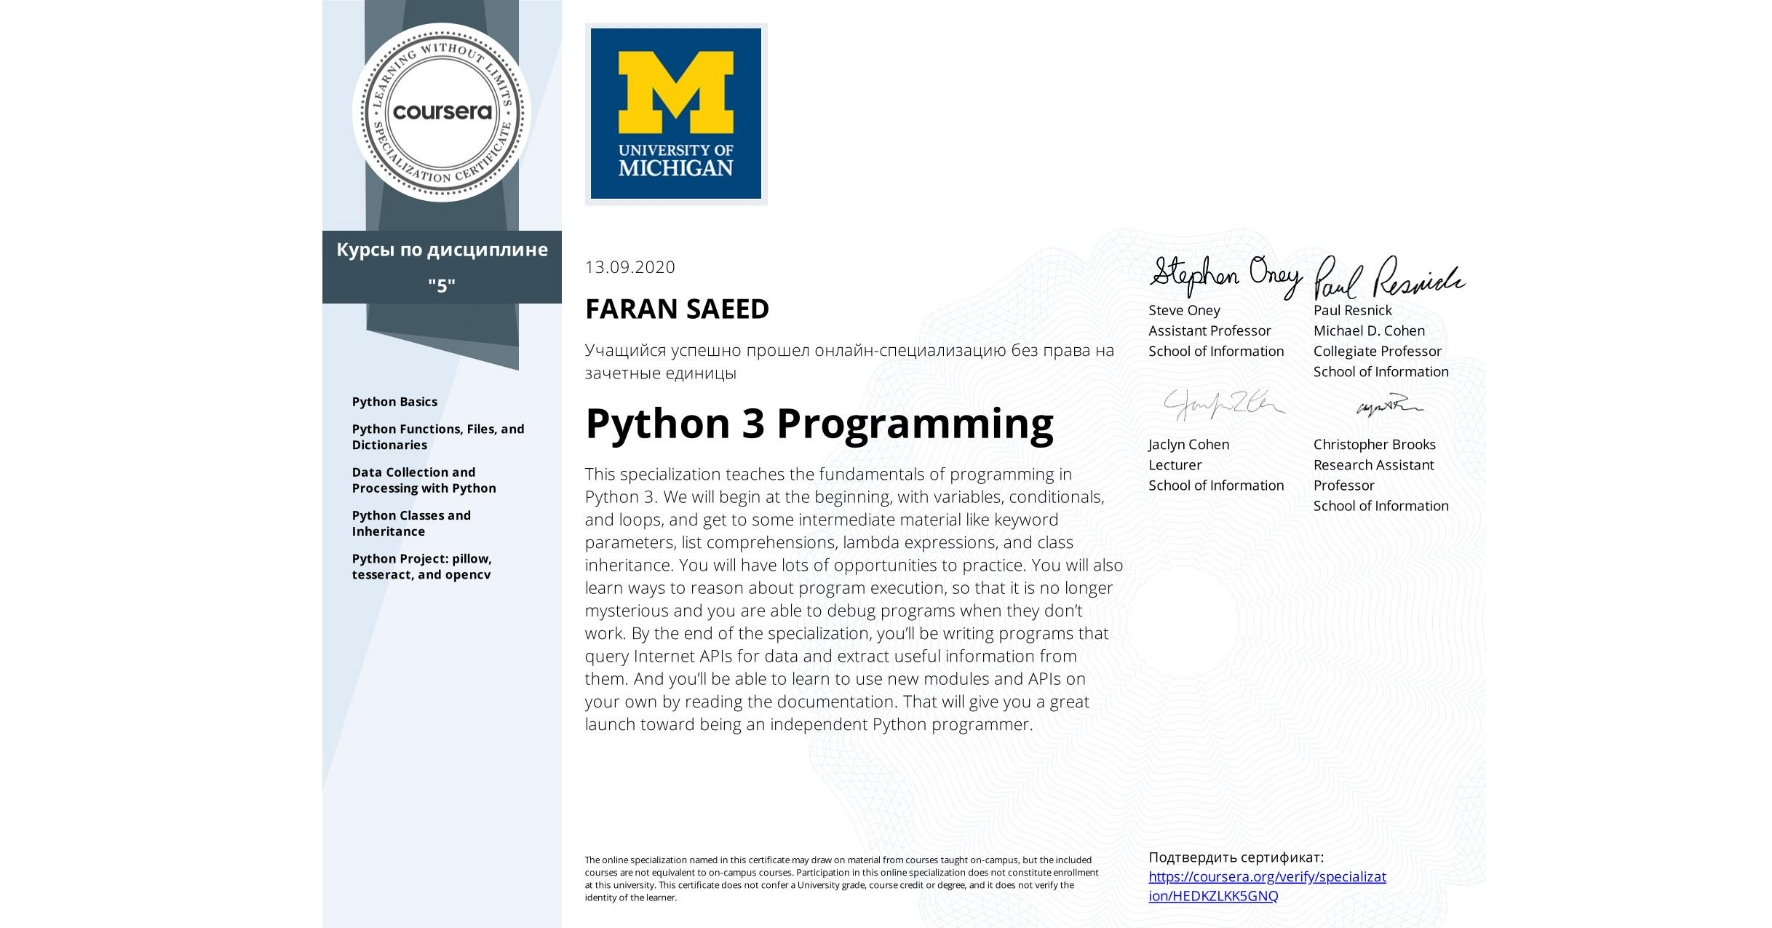 View certificate for FARAN SAEED, Python 3 Programming, offered through Coursera. This specialization teaches the fundamentals of programming in Python 3. We will begin at the beginning, with variables, conditionals, and loops, and get to some intermediate material like keyword parameters, list comprehensions, lambda expressions, and class inheritance.  You will have lots of opportunities to practice. You will also learn ways to reason about program execution, so that it is no longer mysterious and you are able to debug programs when they don't work.  By the end of the specialization, you'll be writing programs that query Internet APIs for data and extract useful information from them. And you'll be able to learn to use new modules and APIs on your own by reading the documentation. That will give you a great launch toward being an independent Python programmer.